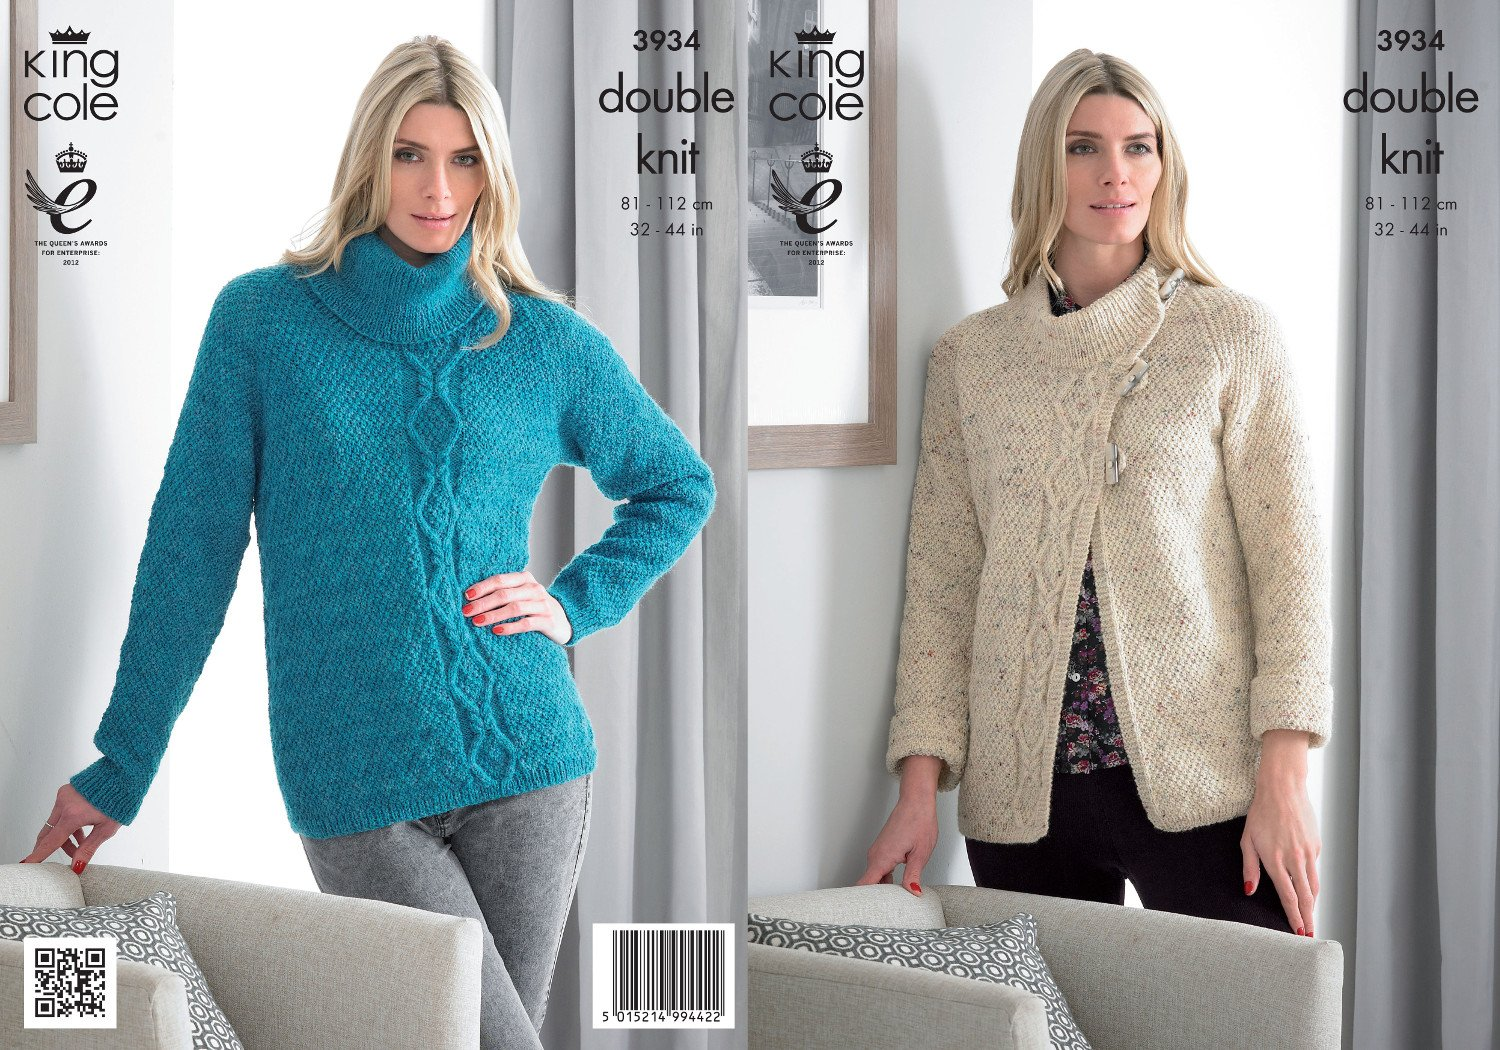 King Cole Ladies Double Knitting Pattern Womens Cable Knit Jacket & Roll Neck Sweater 3934